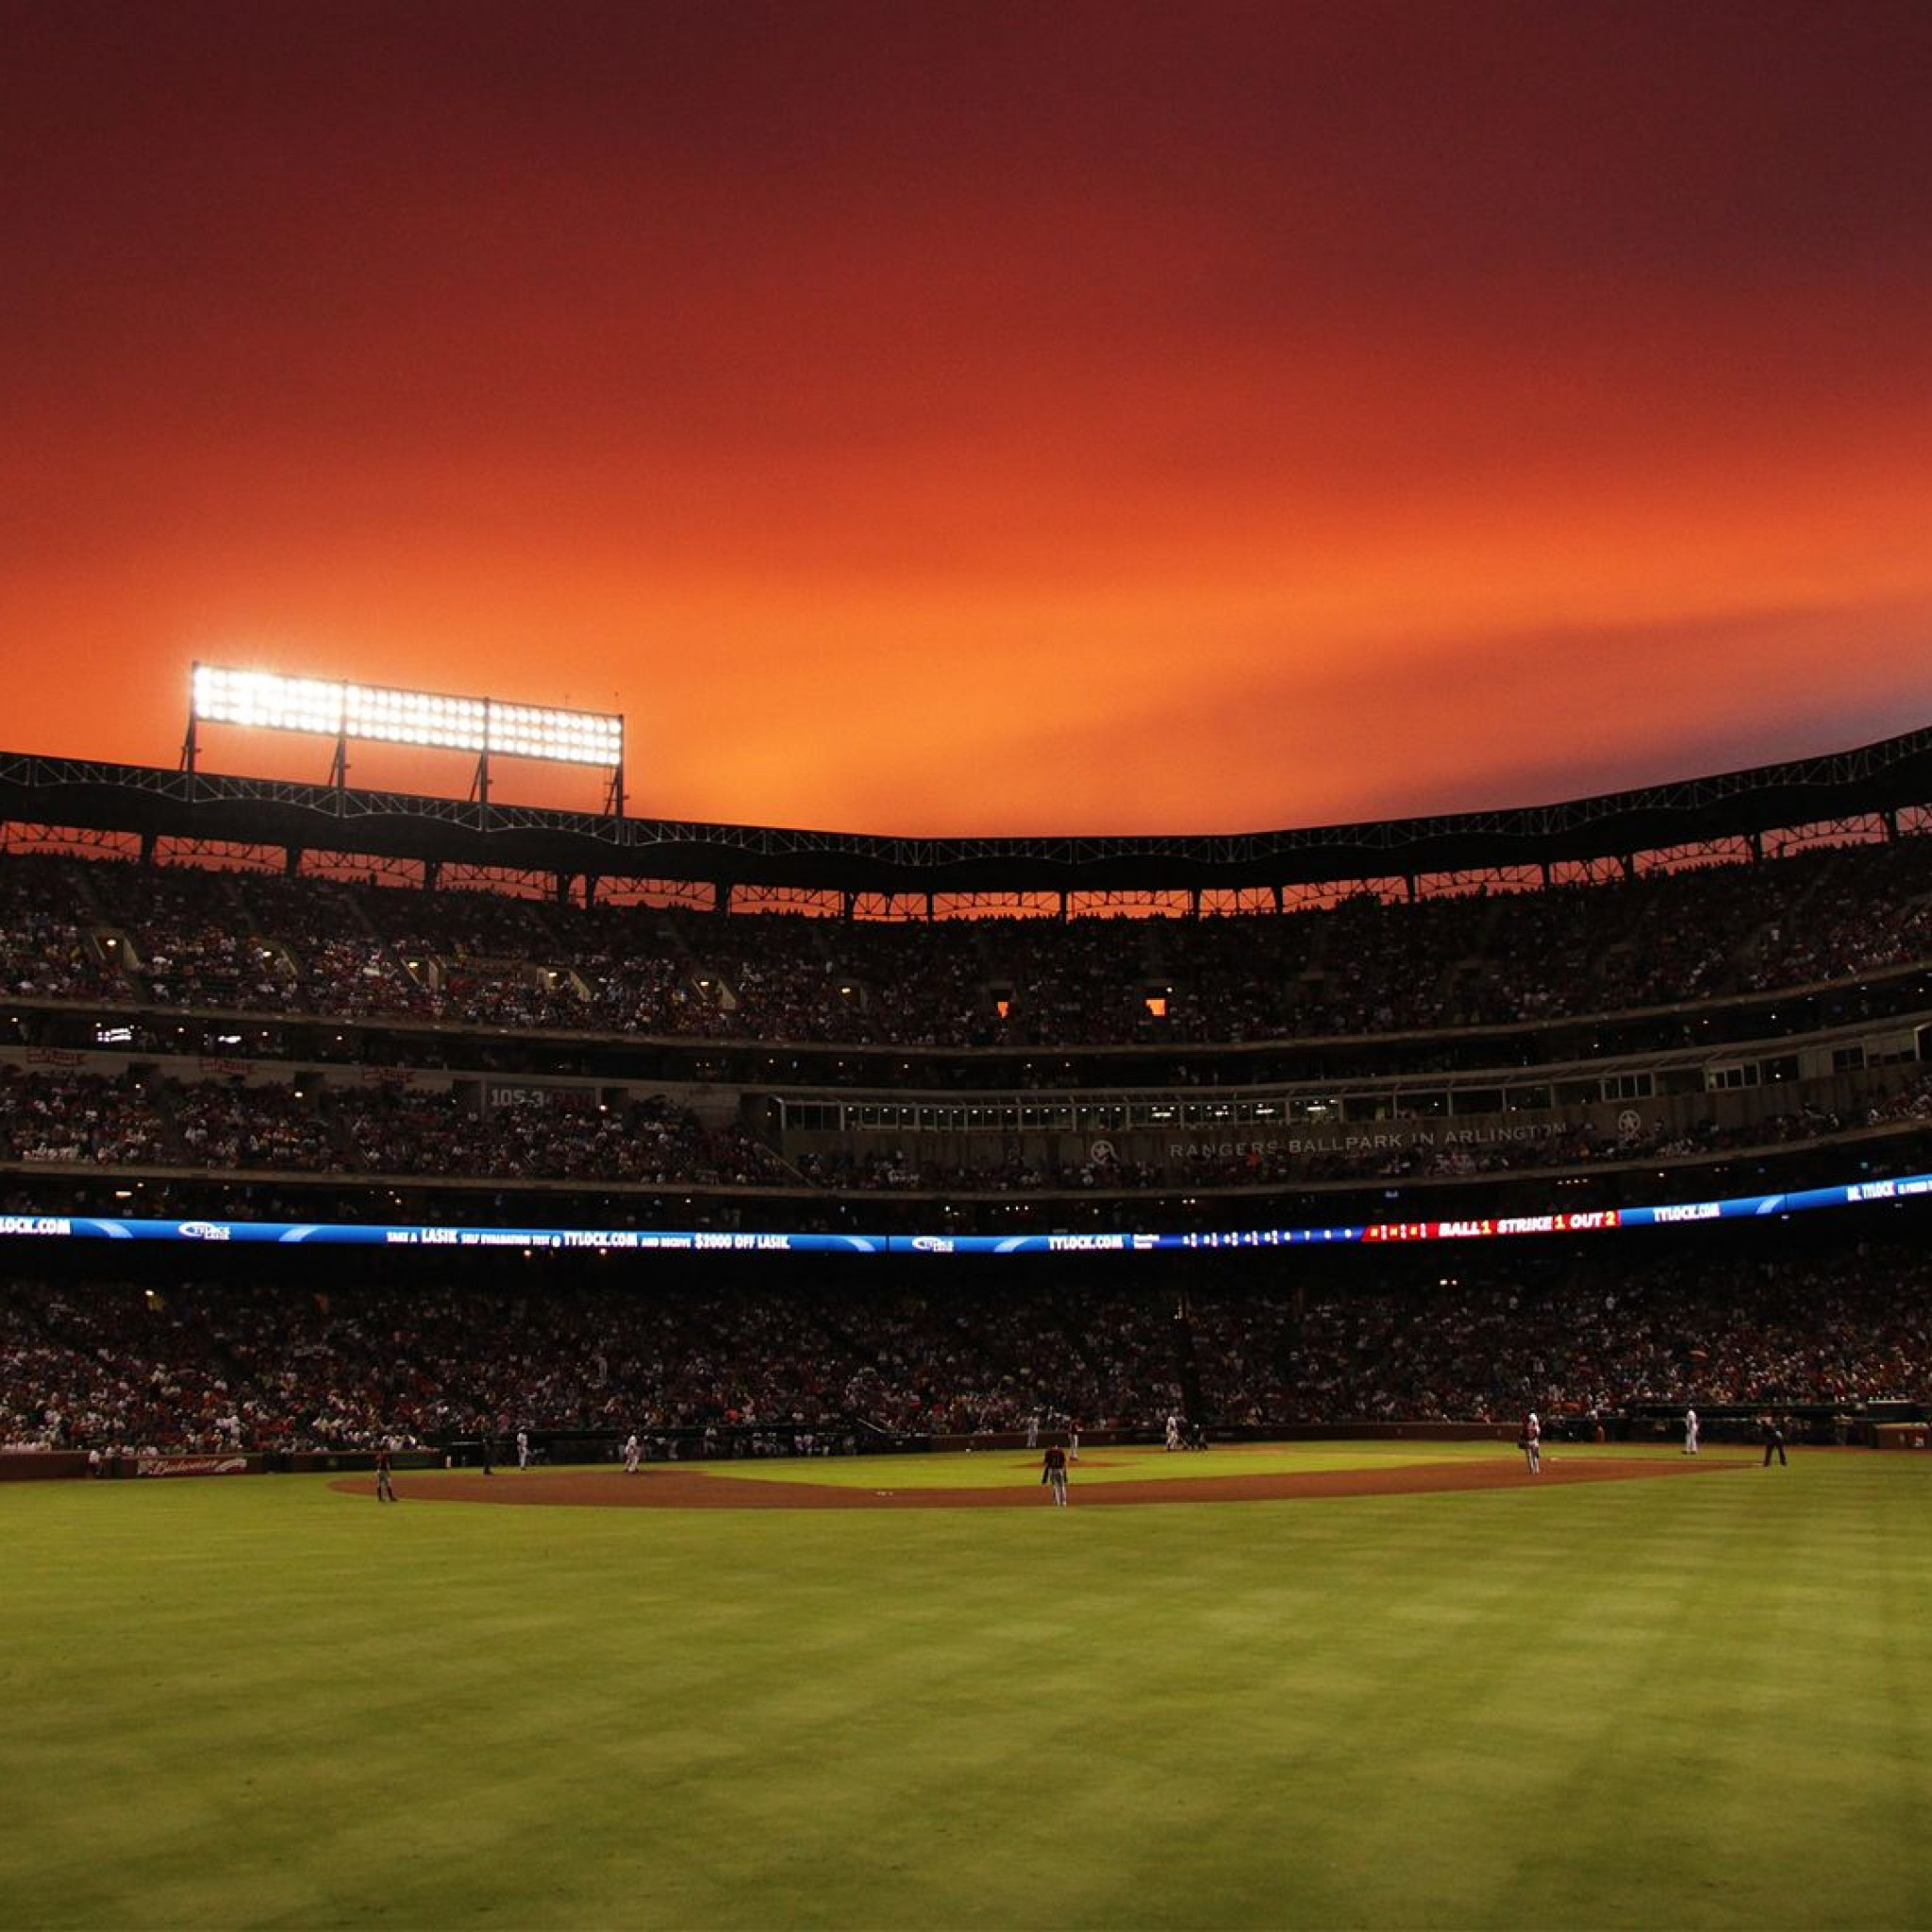 Baseball Stadium Wallpaper   wallpapers pic iPad Wallpaper Gallery 2048x2048